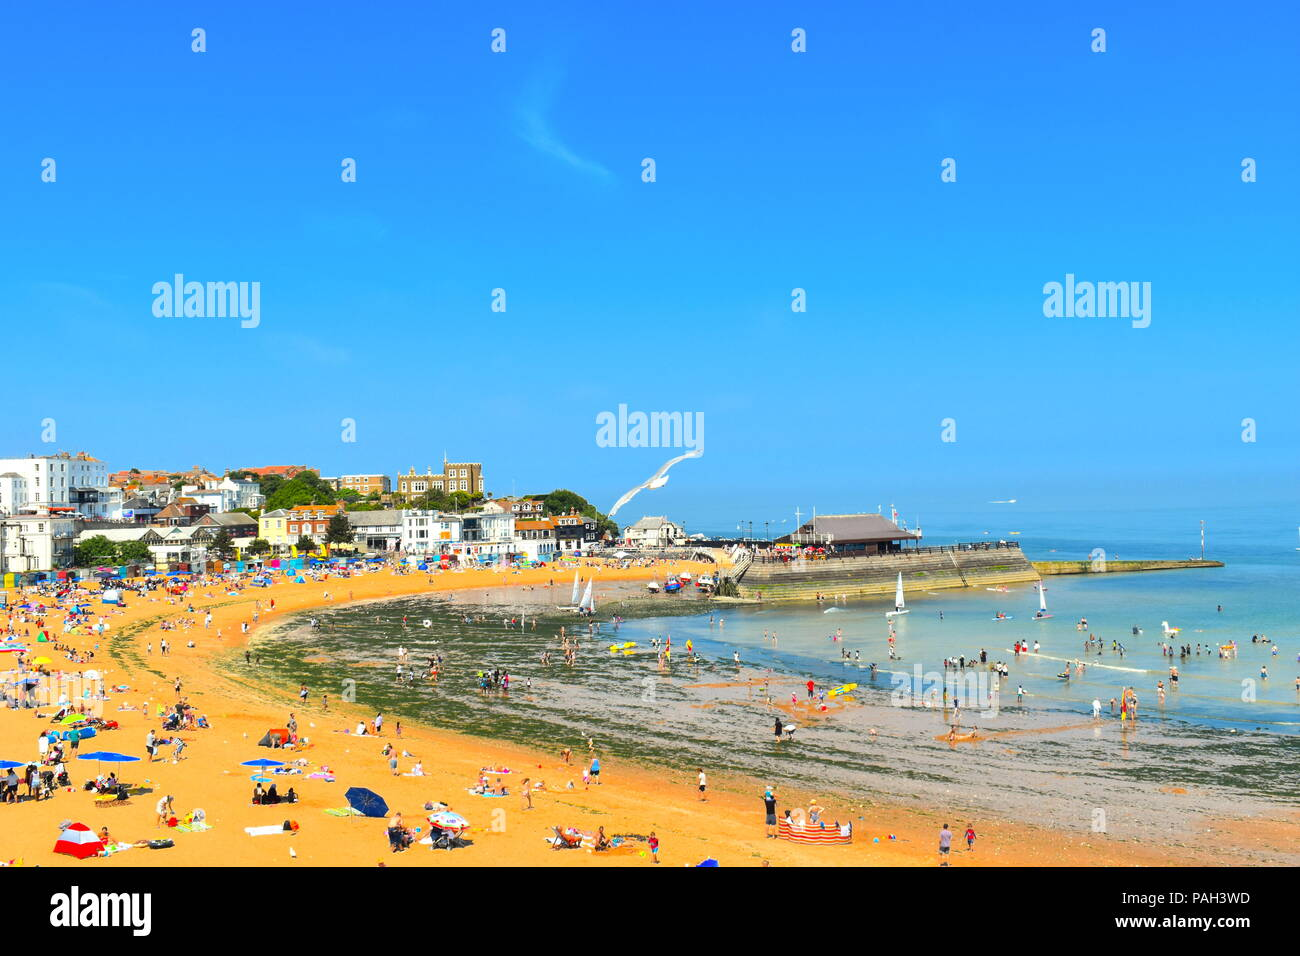 Viking bay beach, tourists and locals during summer heatwave, Broadstairs, Kent, UK, July, 2018 Stock Photo